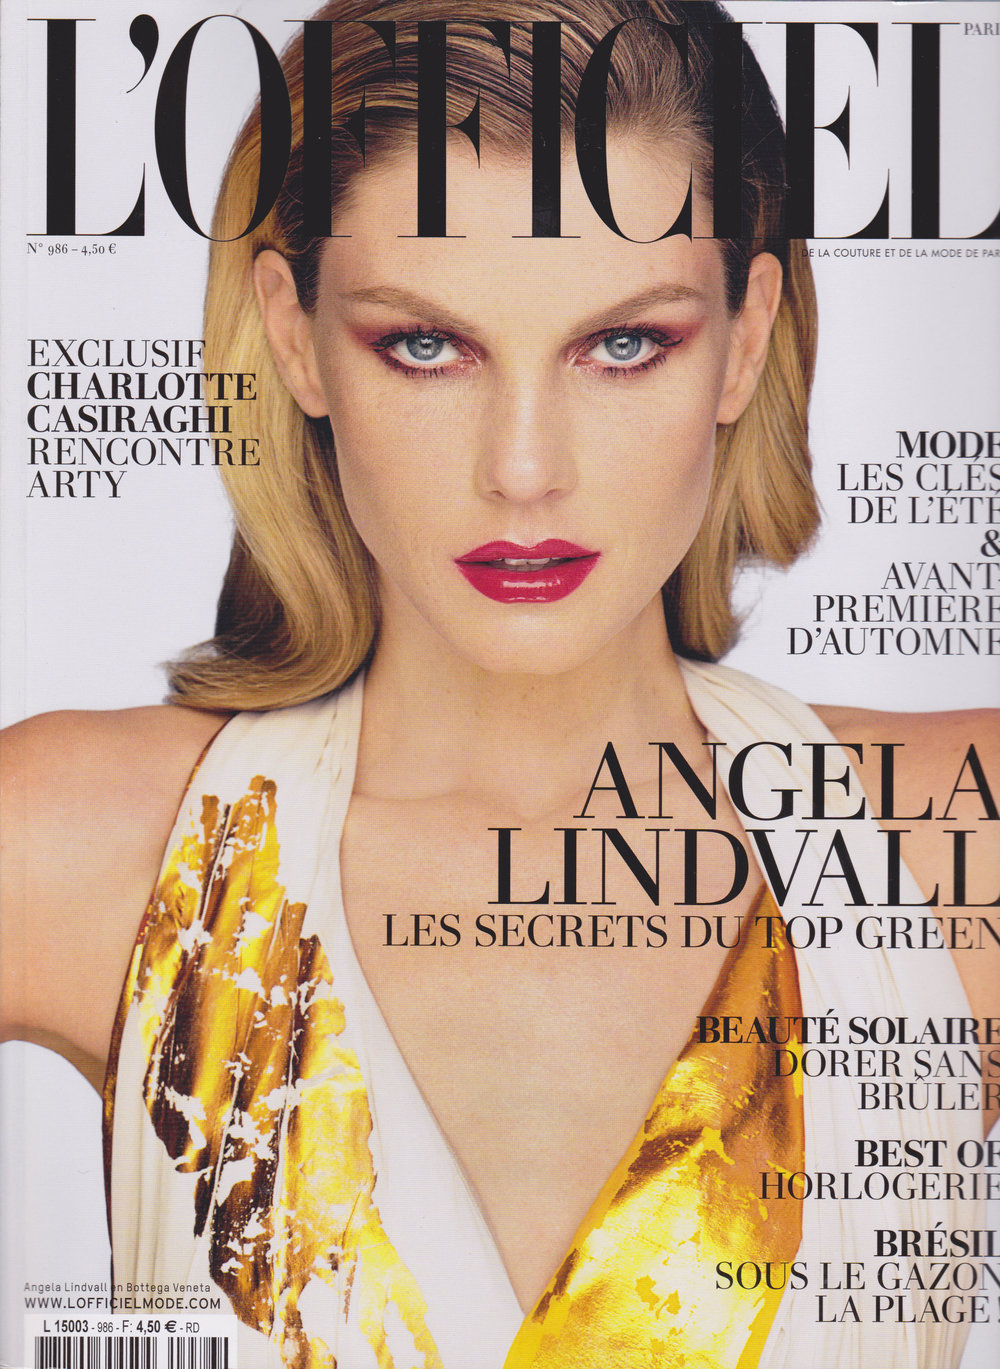 L'OFFICIEL PARIS - SEPTEMBRE 2014